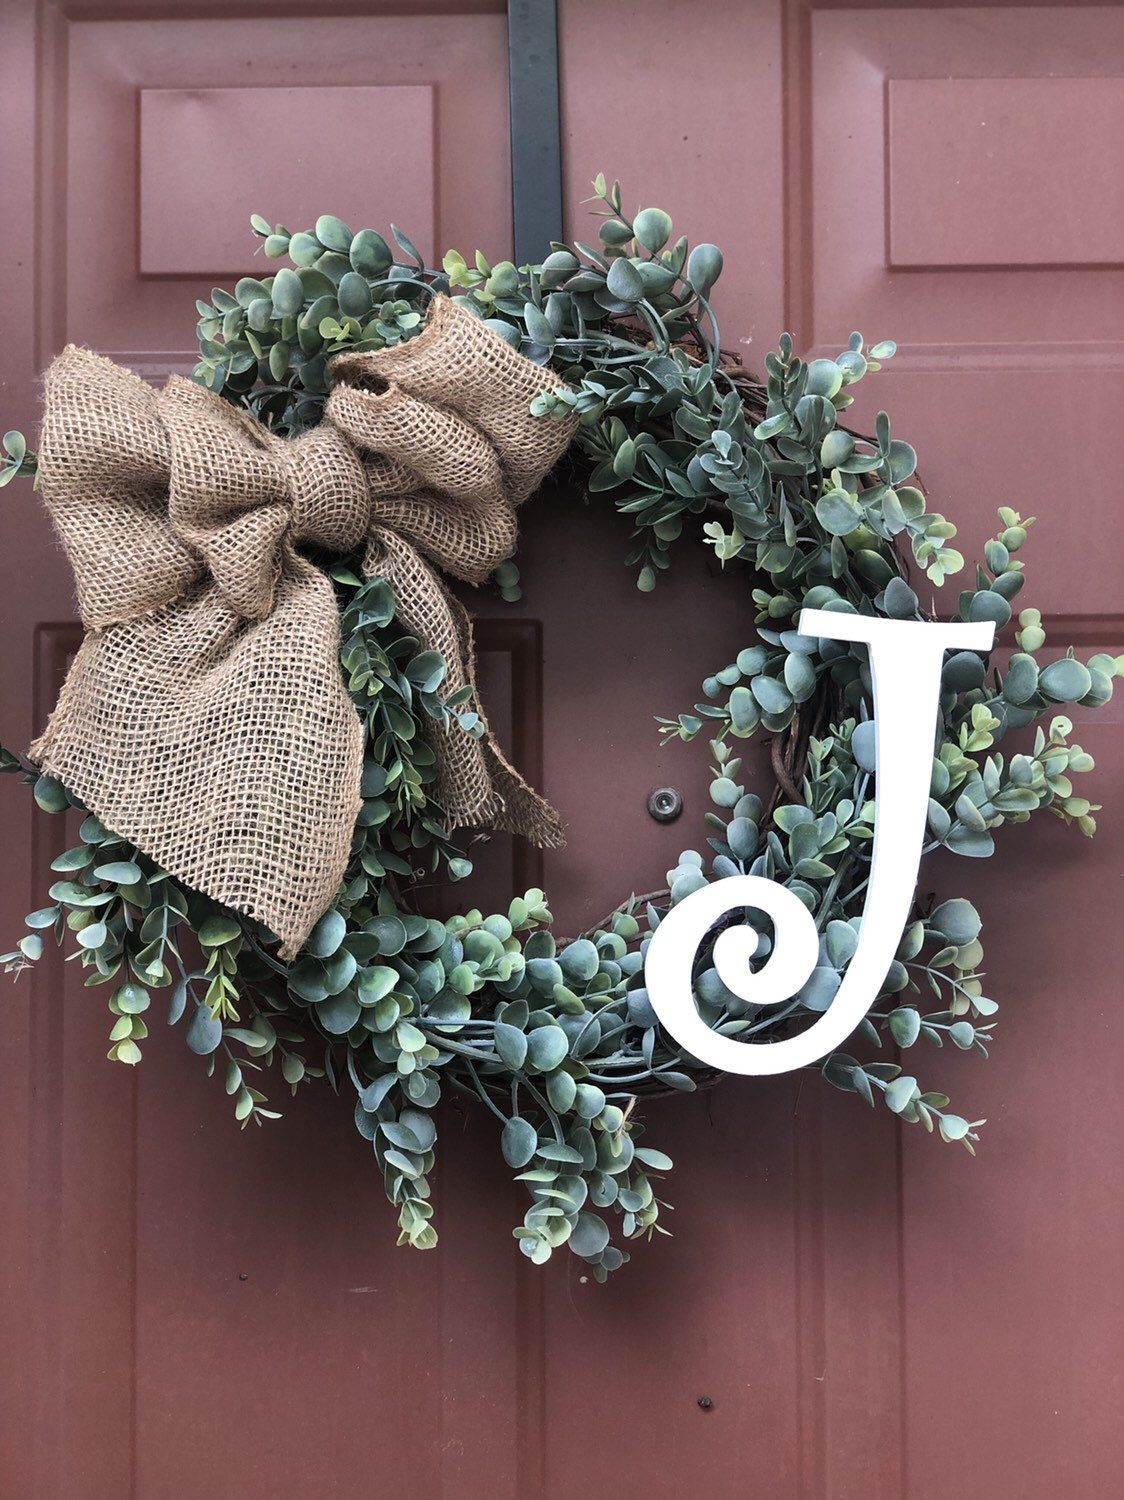 Boxwood Wreath With Monogram Front Door Decor Rustic Wreaths With Initial Front Door Wreath With Letter Christmas Decorations Wreaths Boxwood Wreath Decor Boxwood Wreath